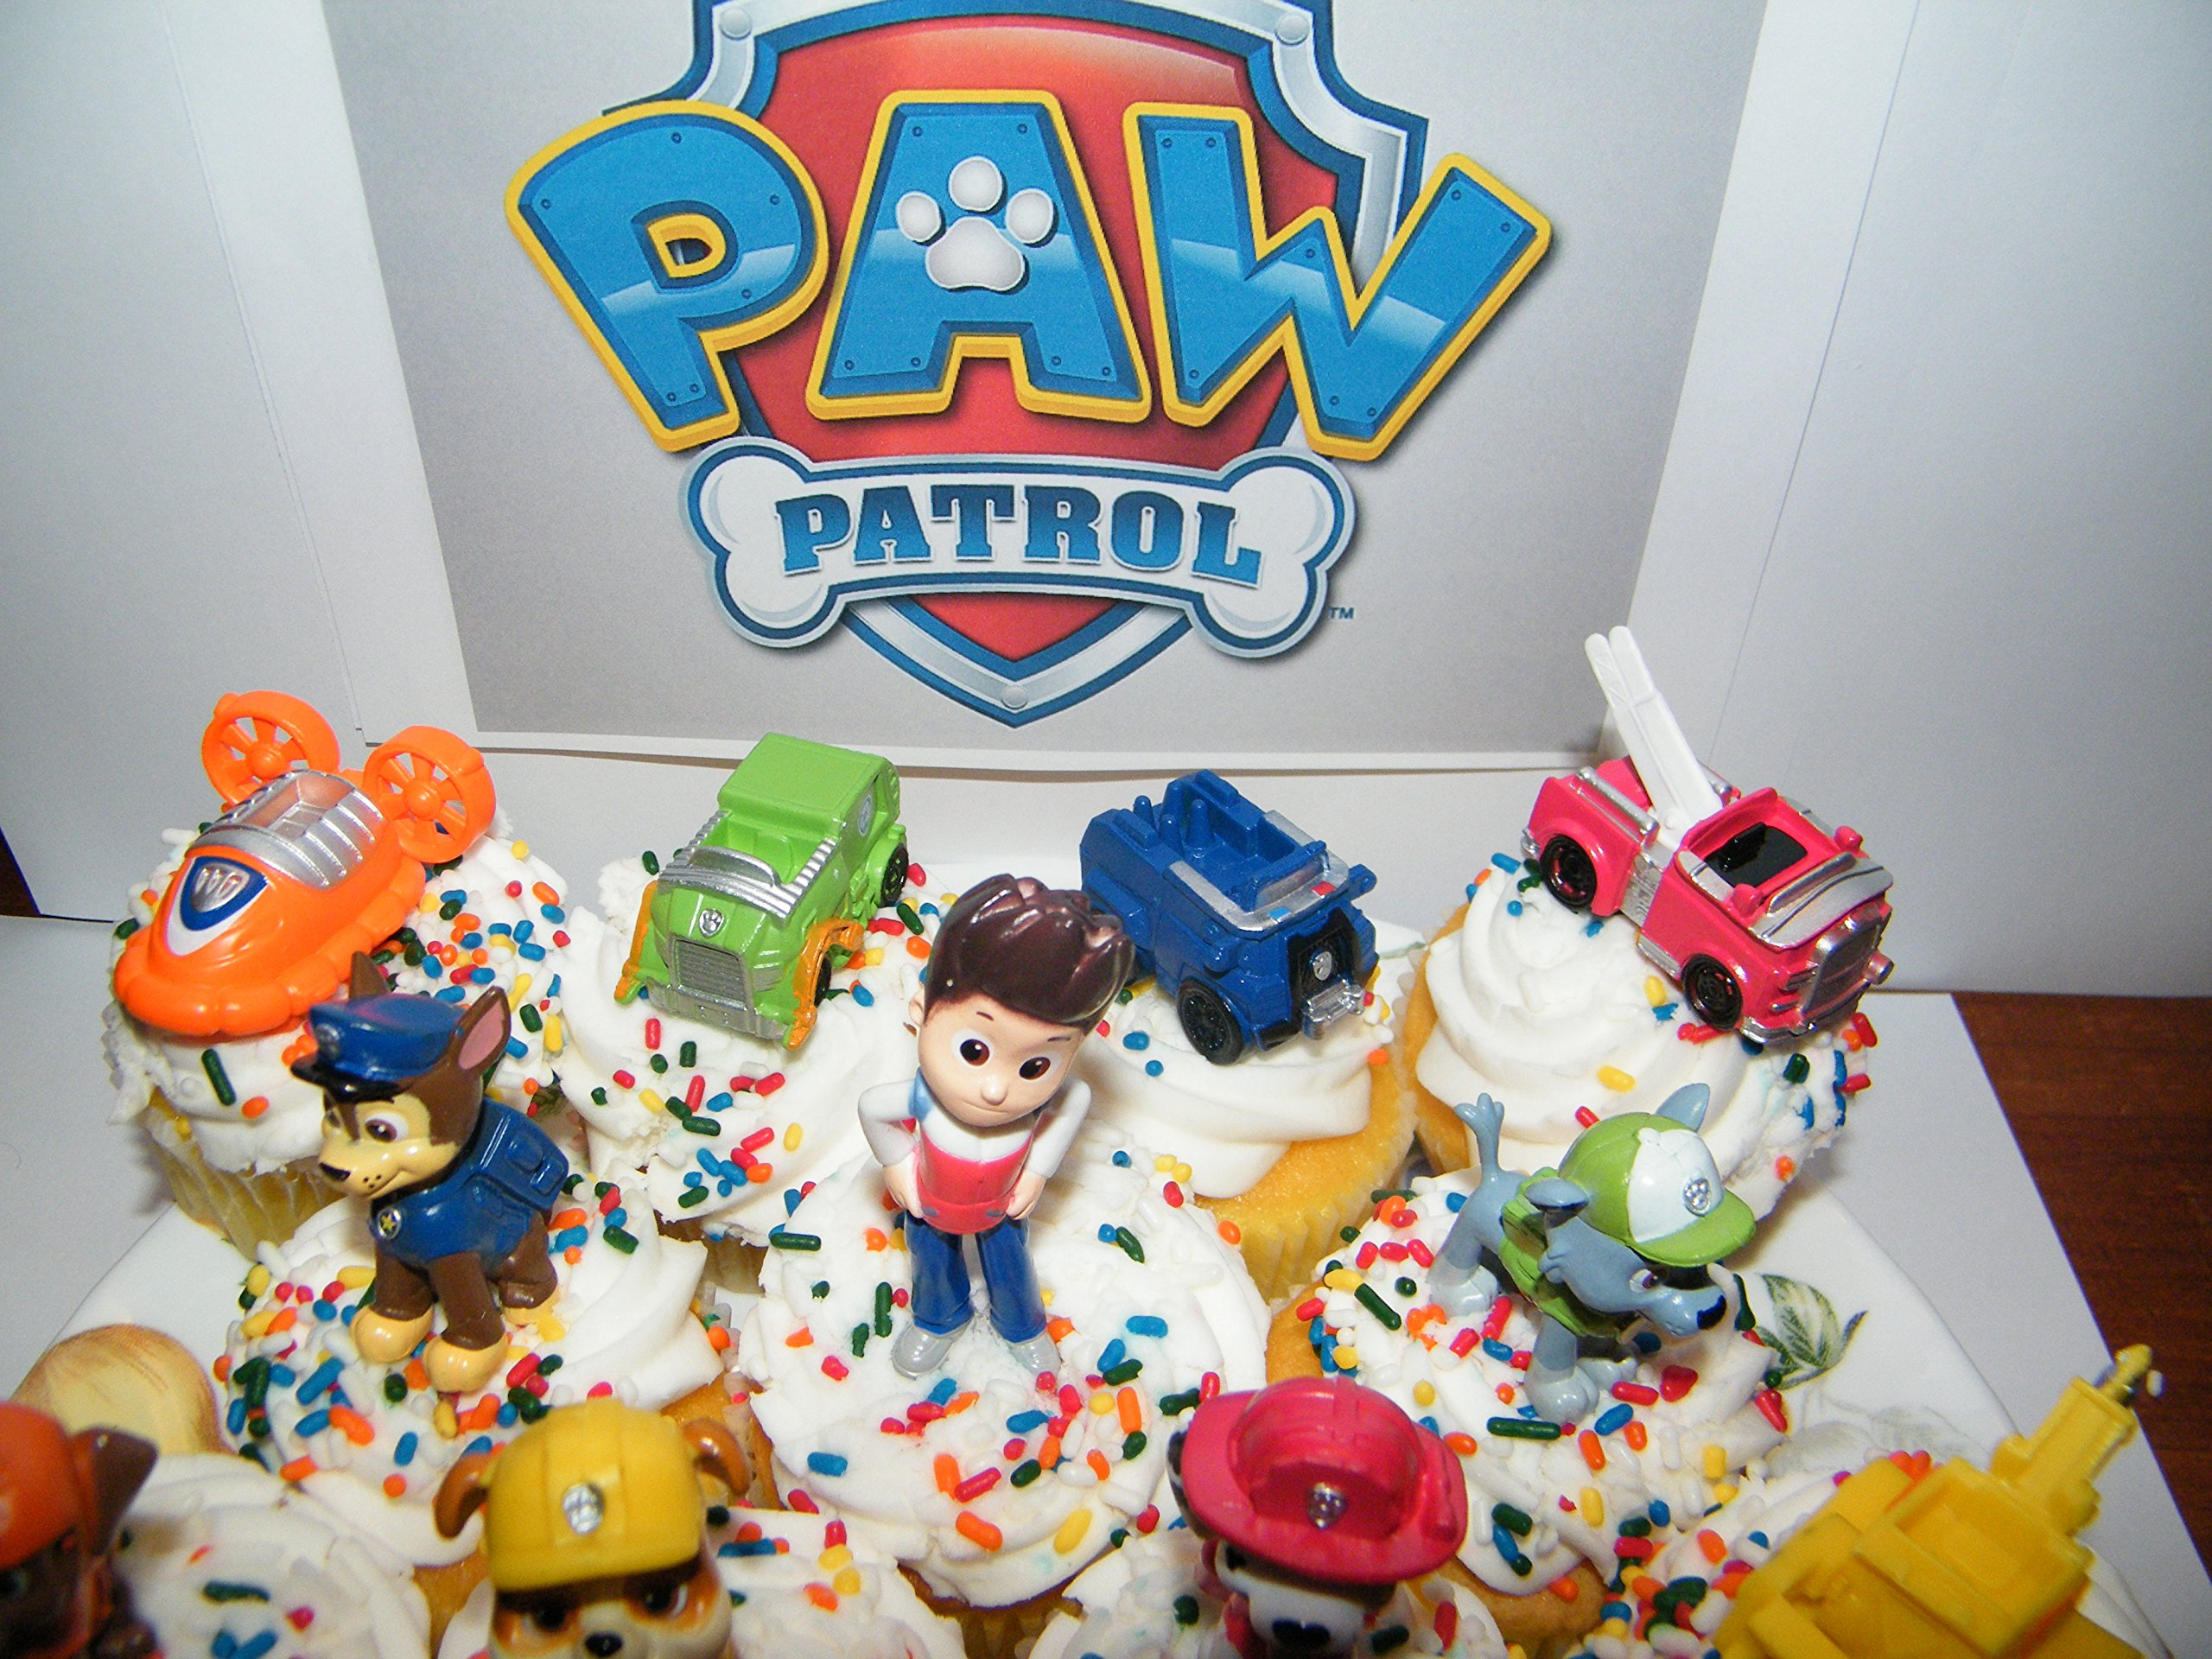 Nickelodeon PAW Patrol Figure Set of 12 Deluxe Mini Cake Toppers Cupcake Decorations Party favors Featuring Ryder, Marshall, Chase, Skye, 5 Vehicles and Special Gift by Paw Patrol (Image #5)